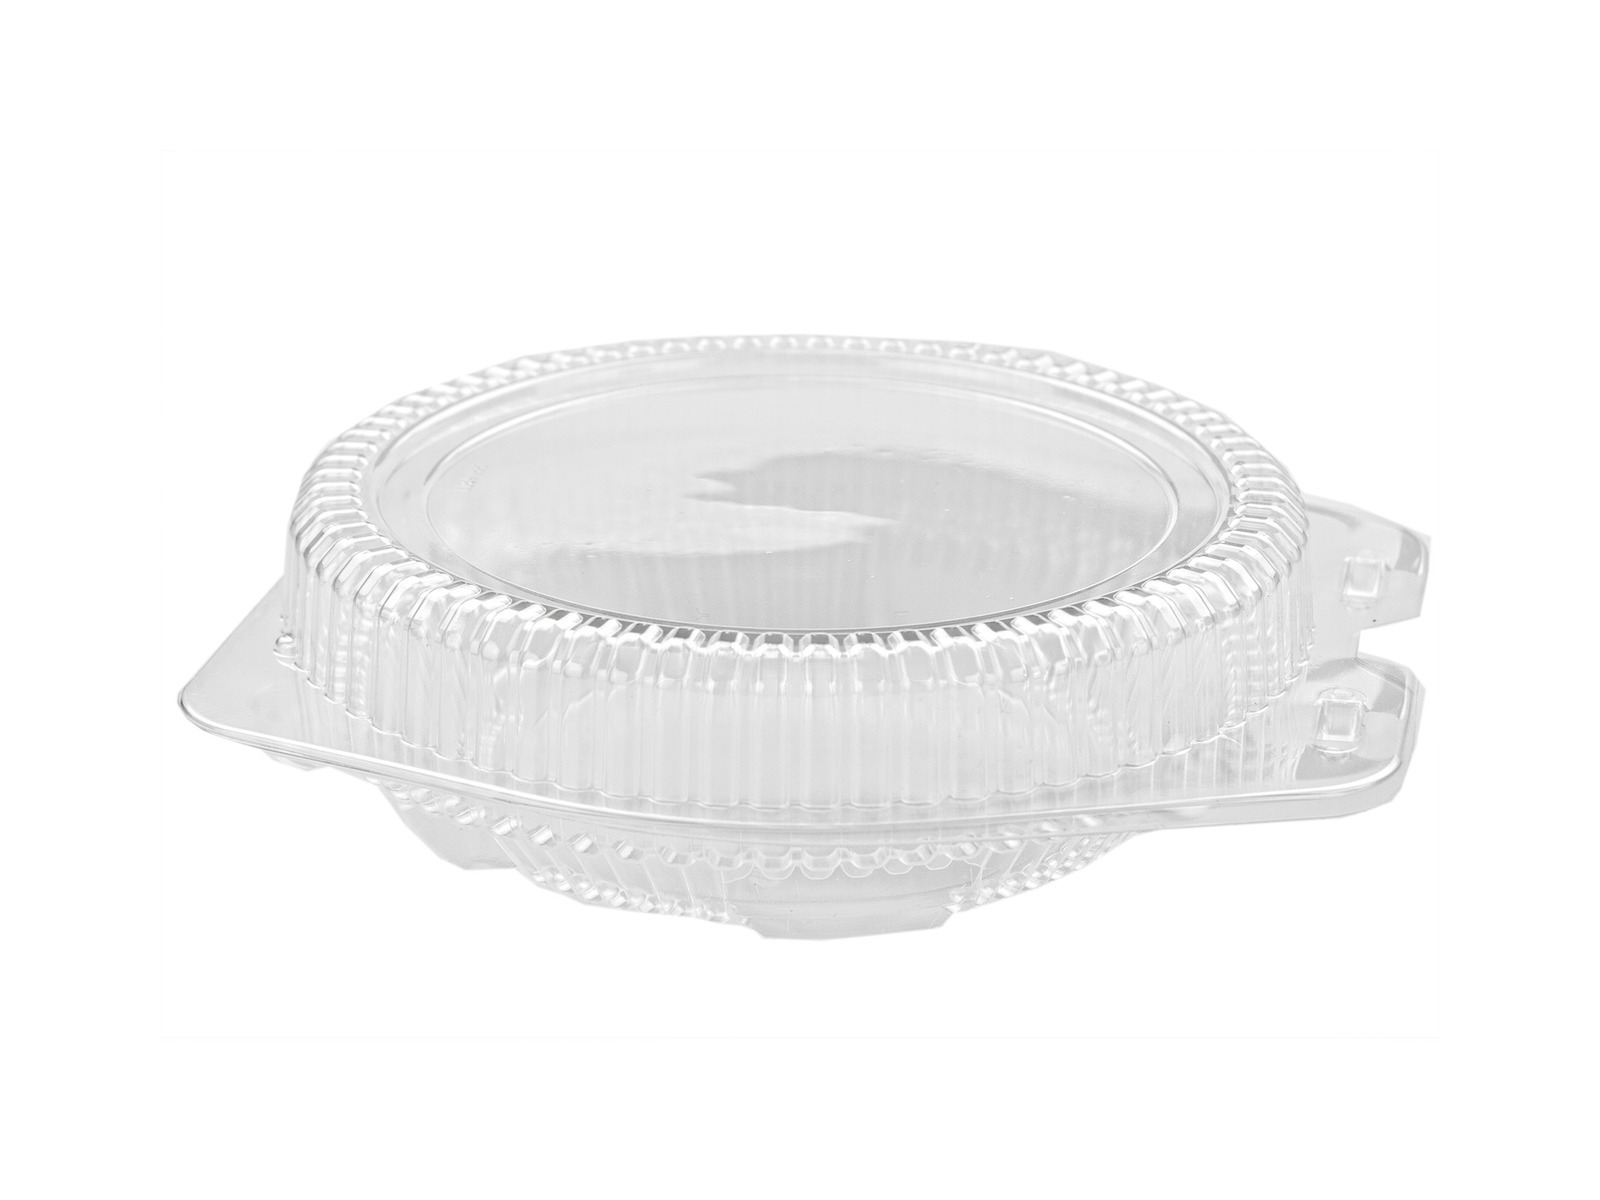 8 inch pie container